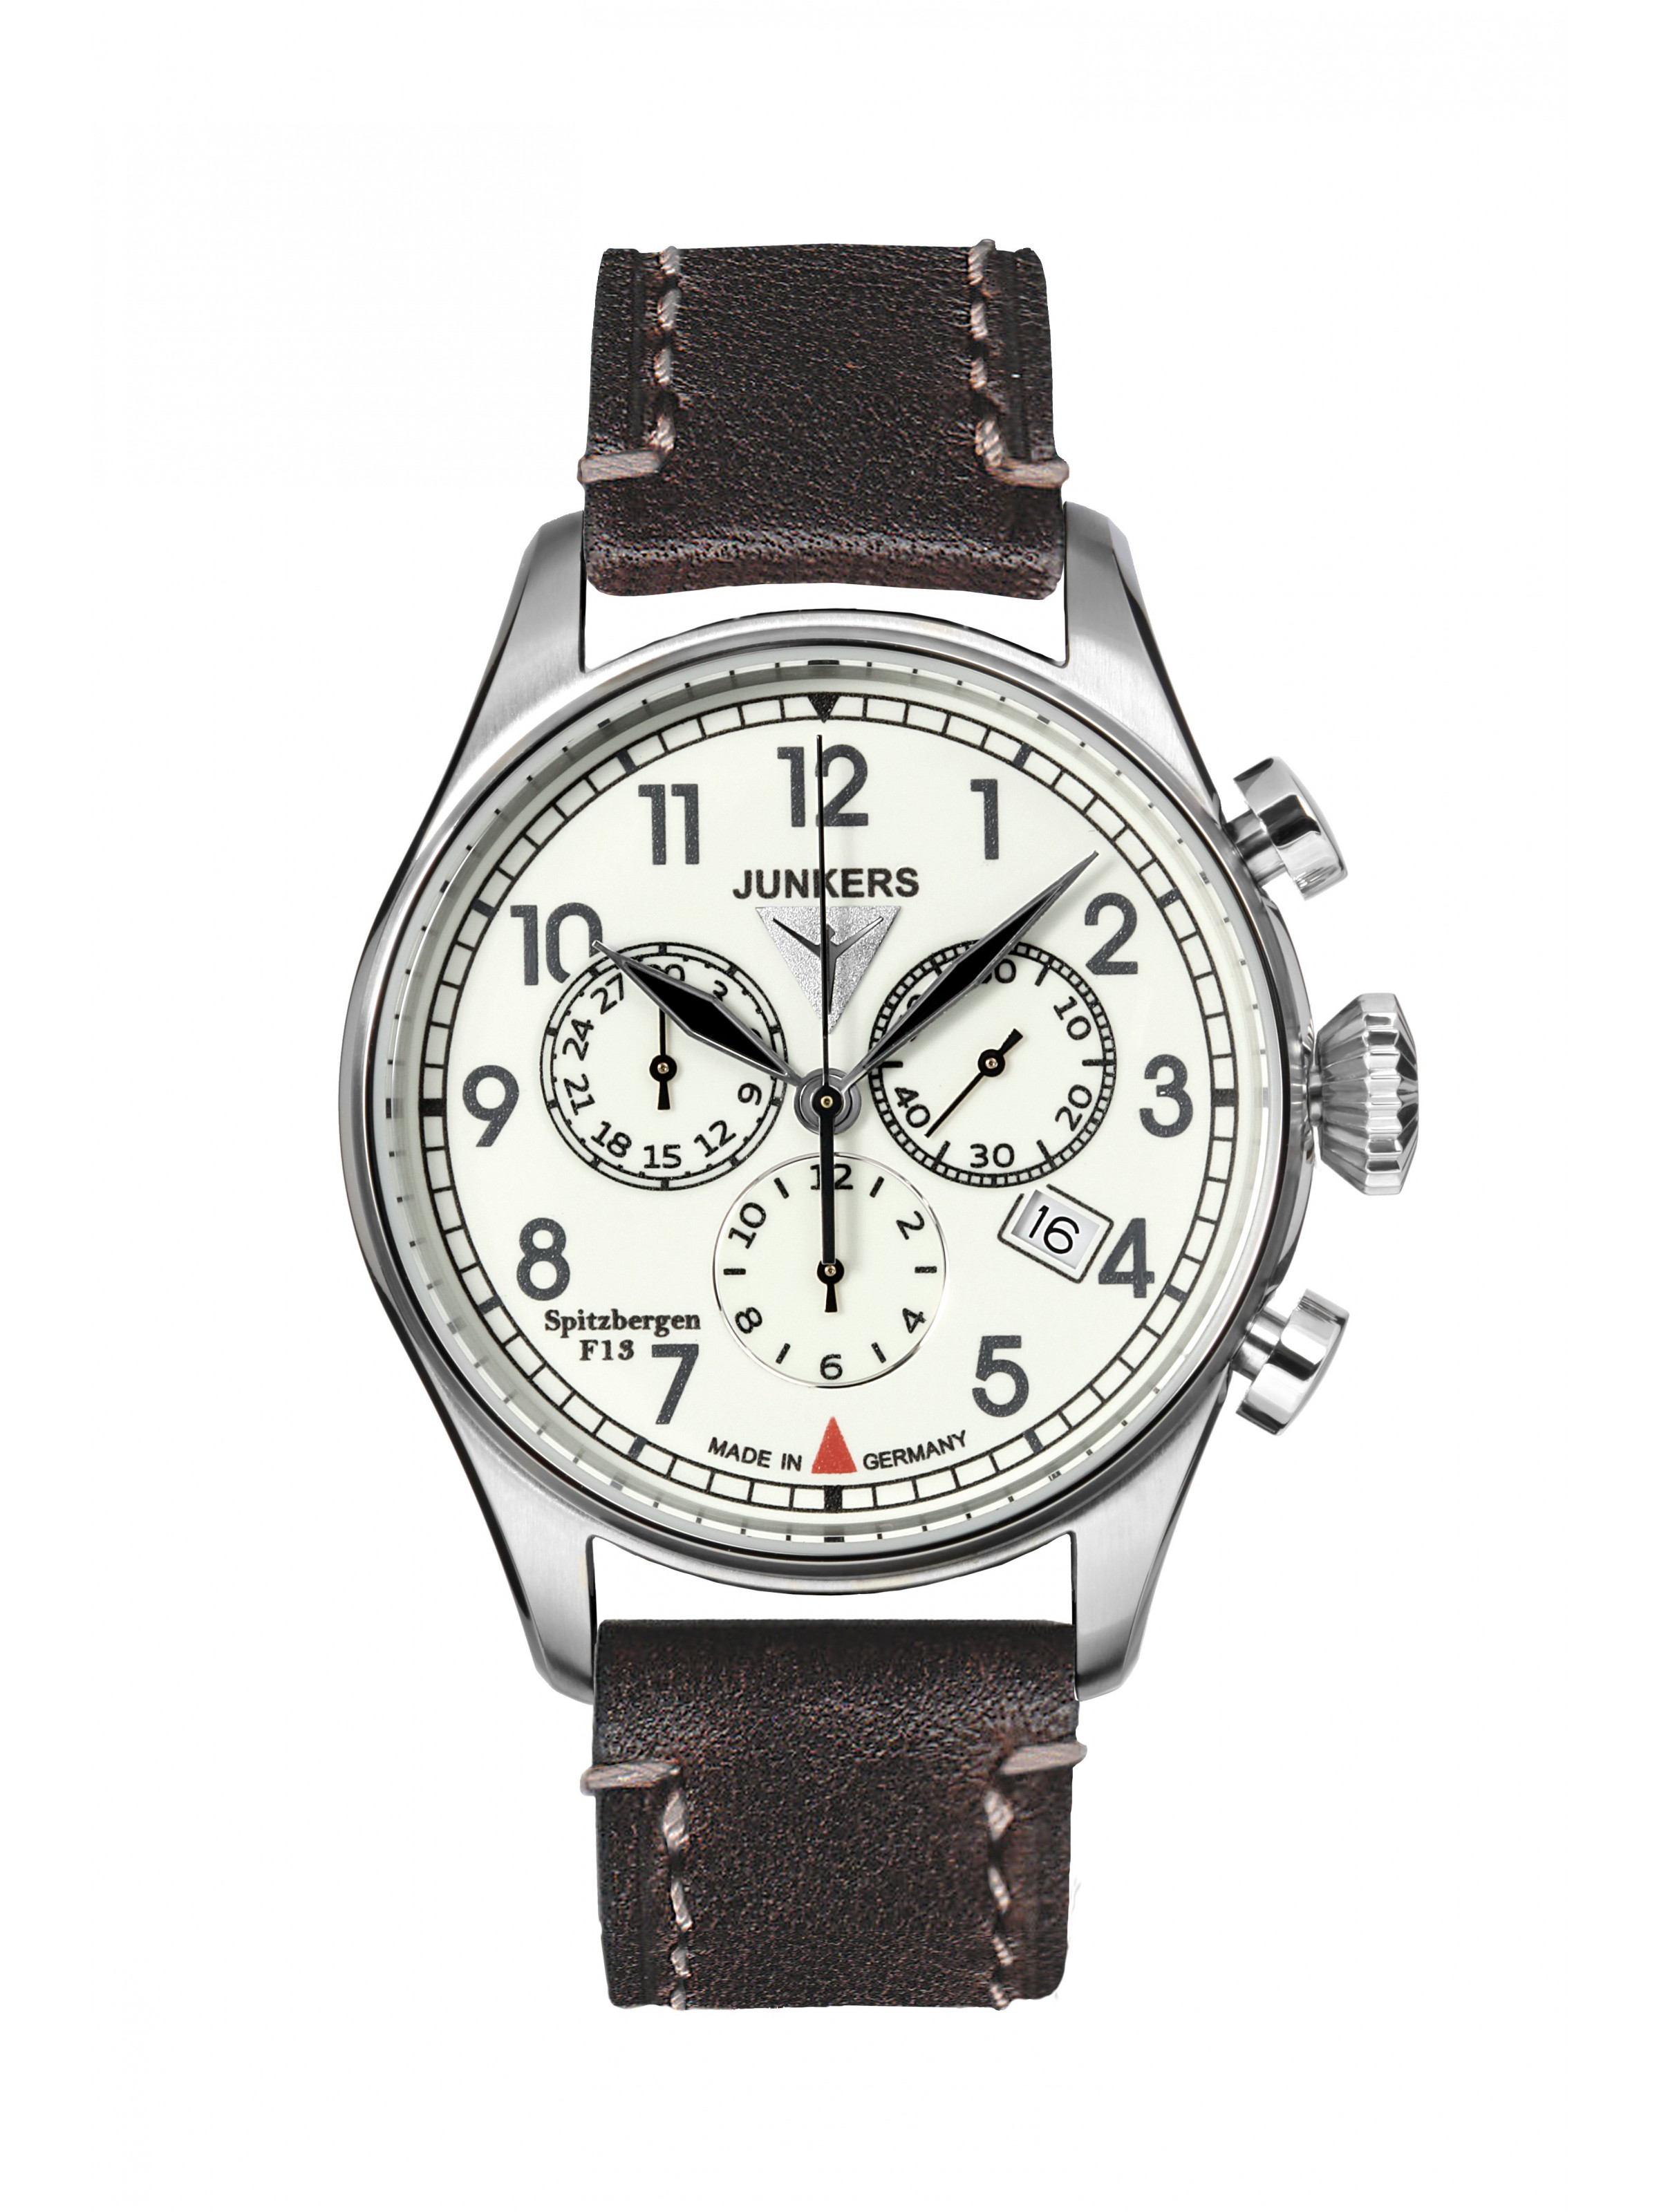 Junkers Spitzbergen Expedition Chronograph 6186-5